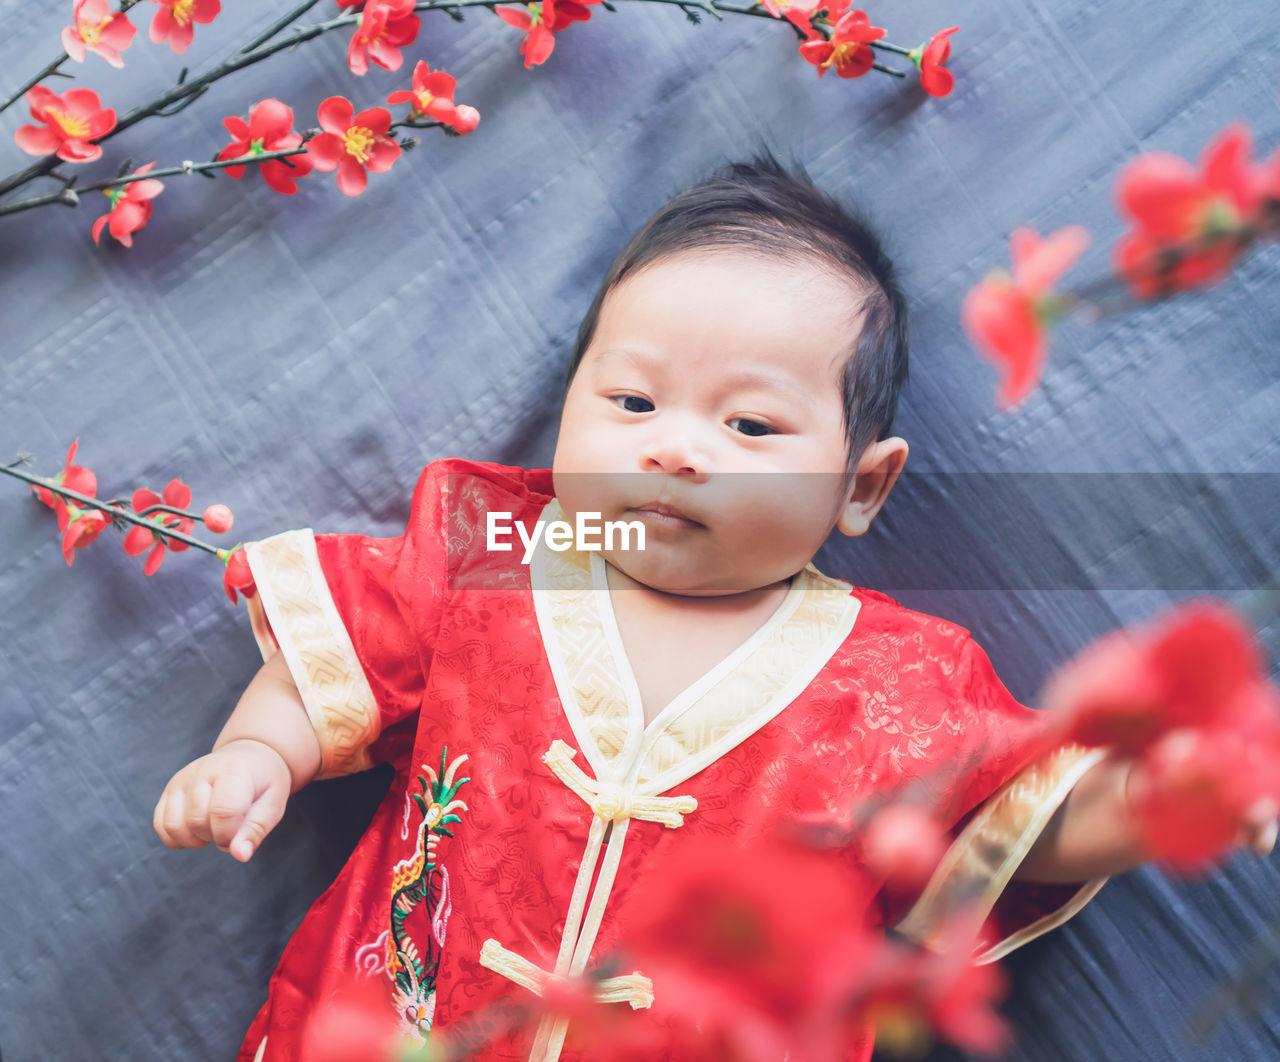 Portrait Of Cute Baby Girl Wearing Traditional Red Clothing